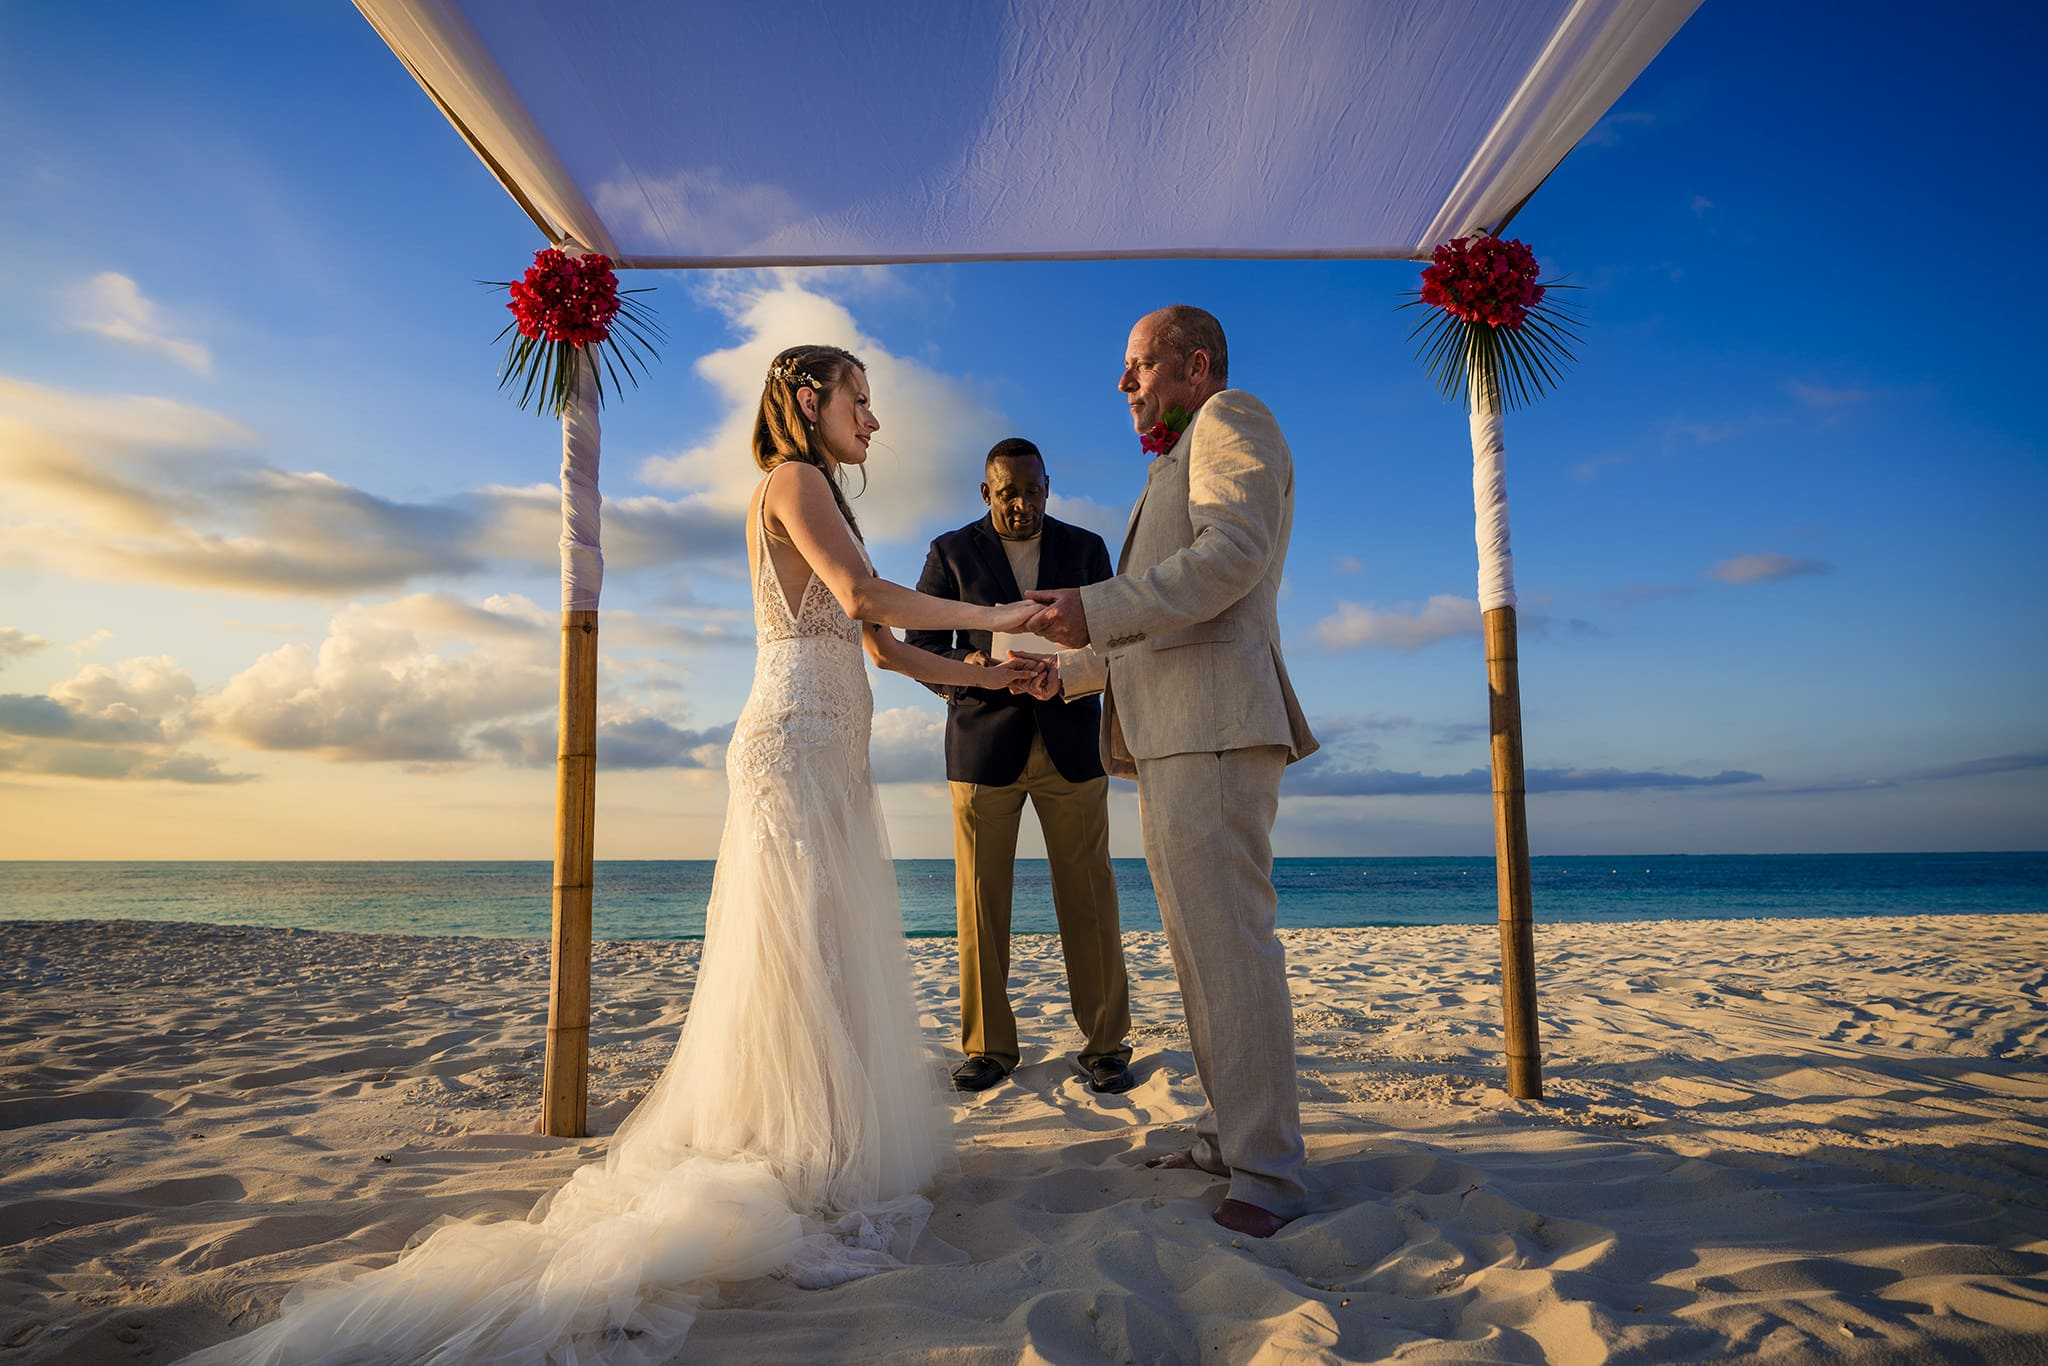 Wymara Resort Turks & Caicos - Destination Wedding Photos - Elopements in the Caribbean